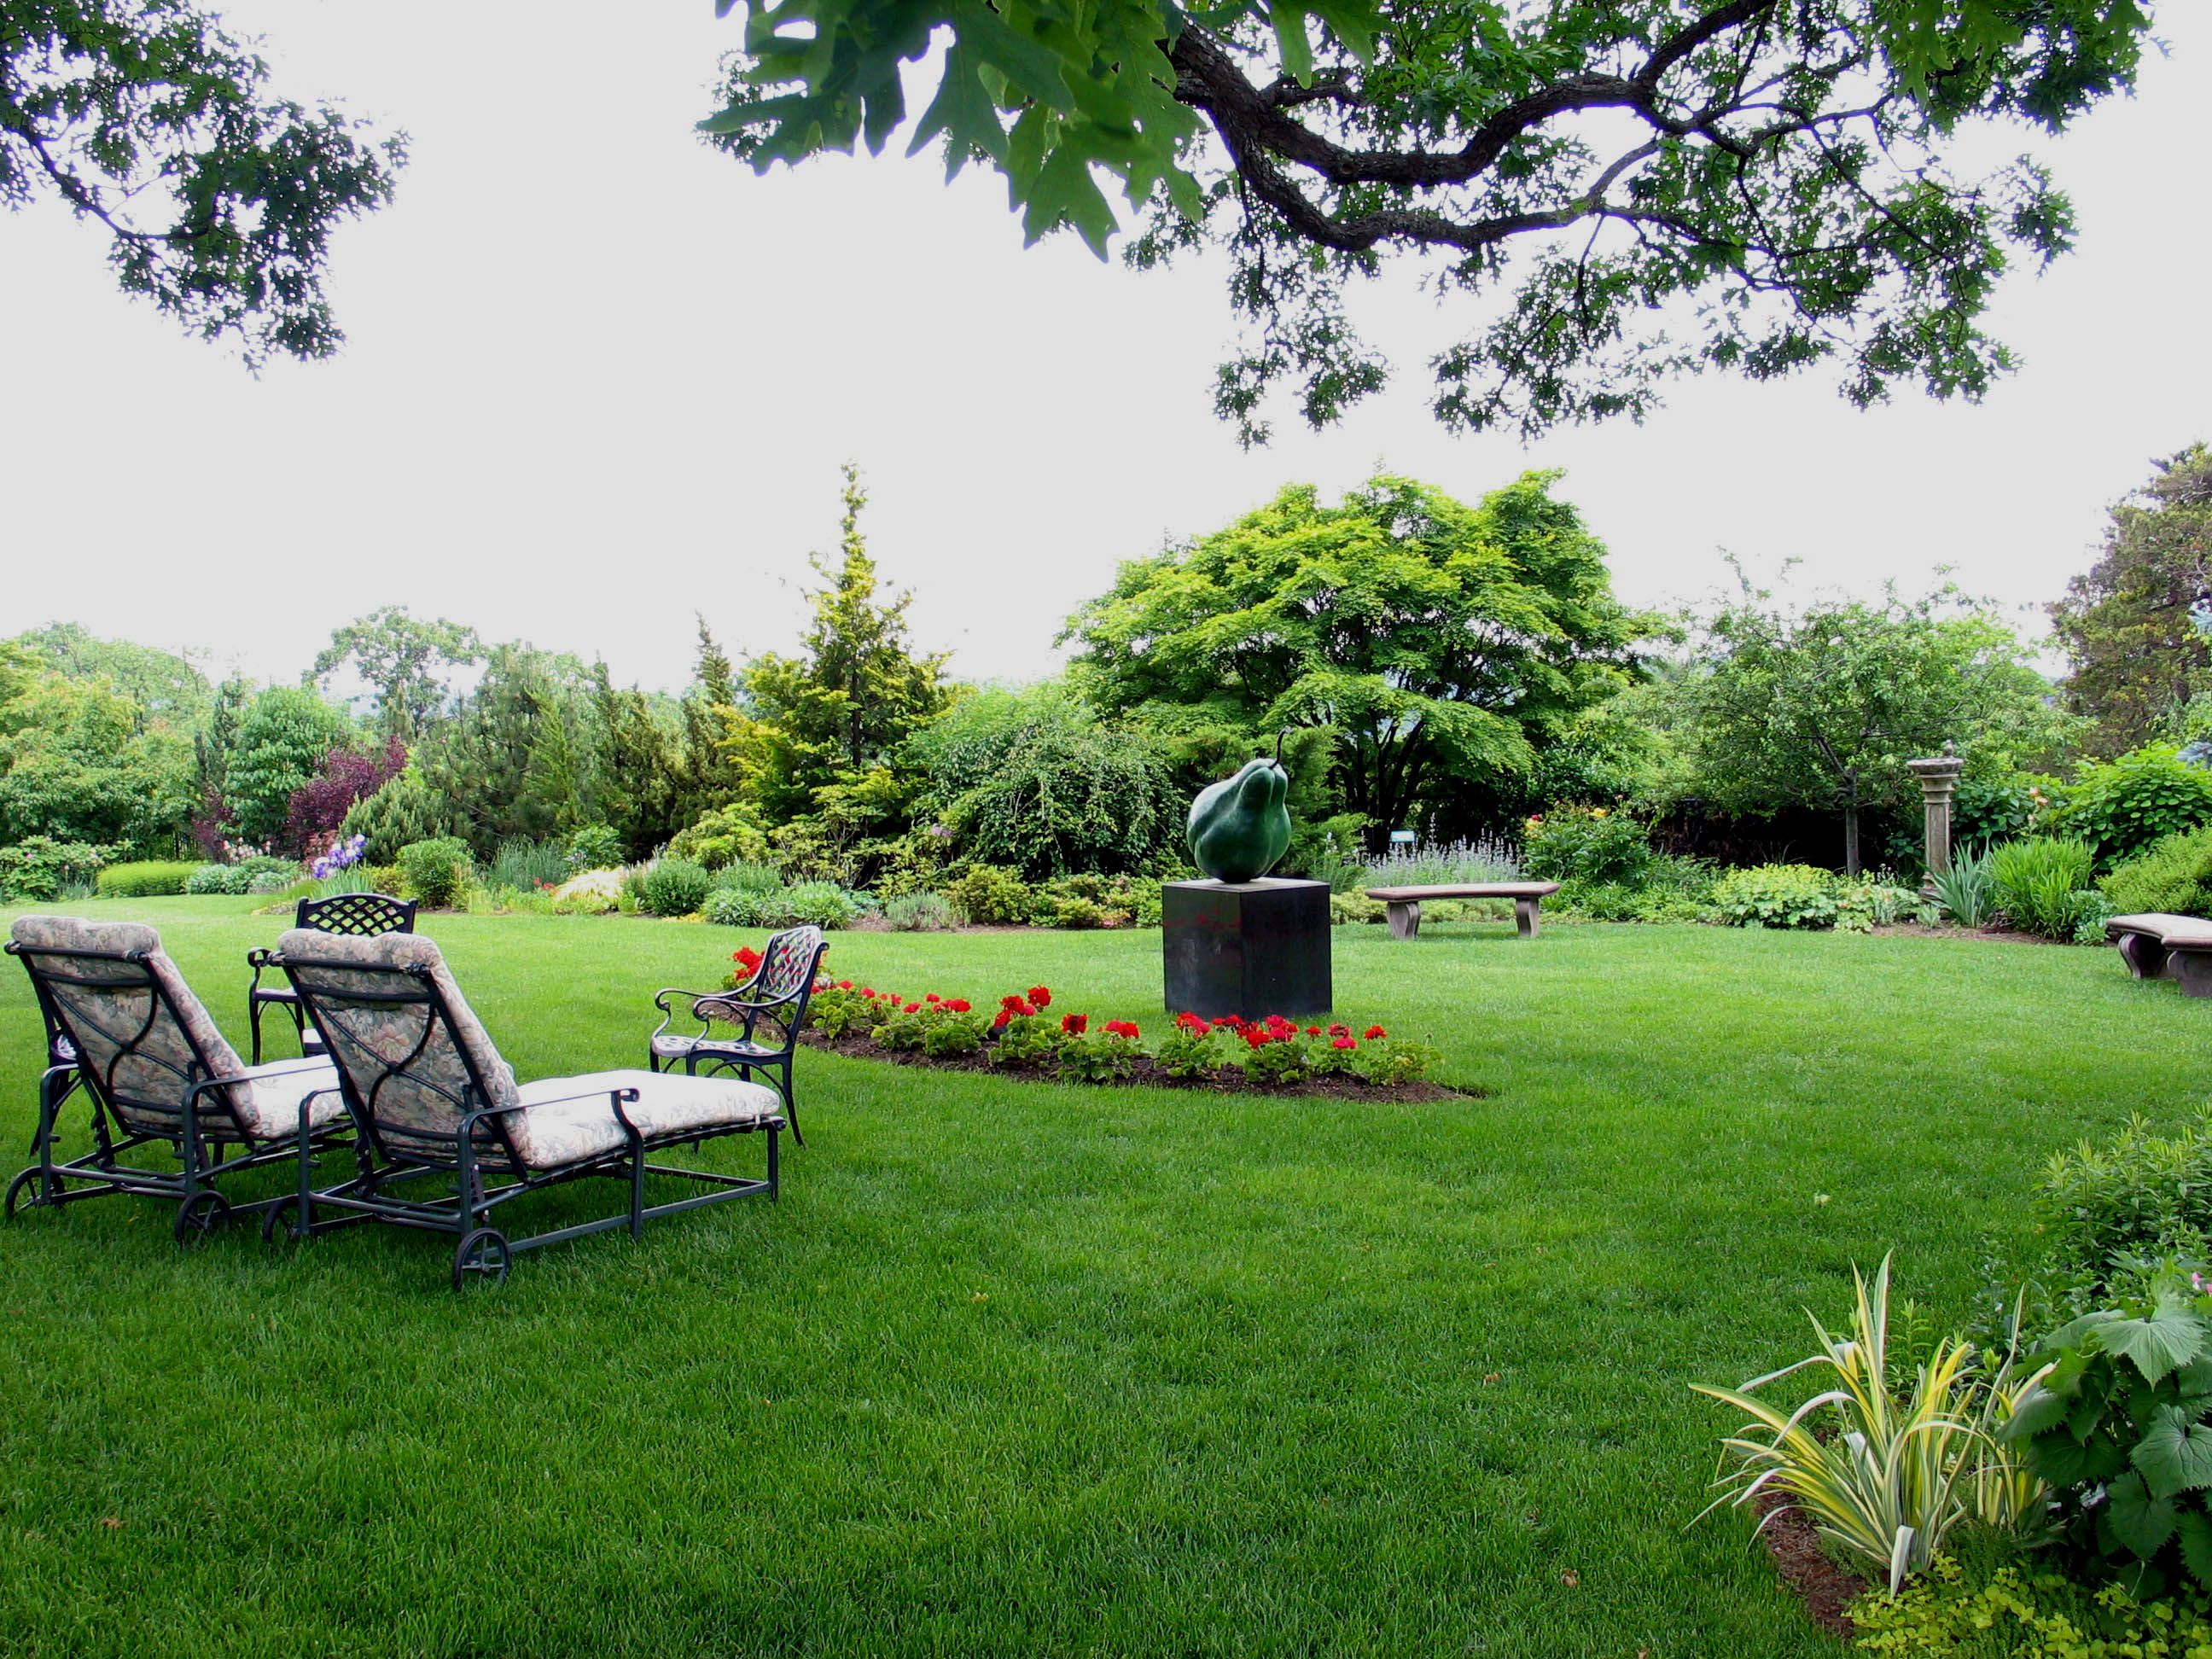 Pear And Gardens Castle Hotel & Spa In Tarrytown